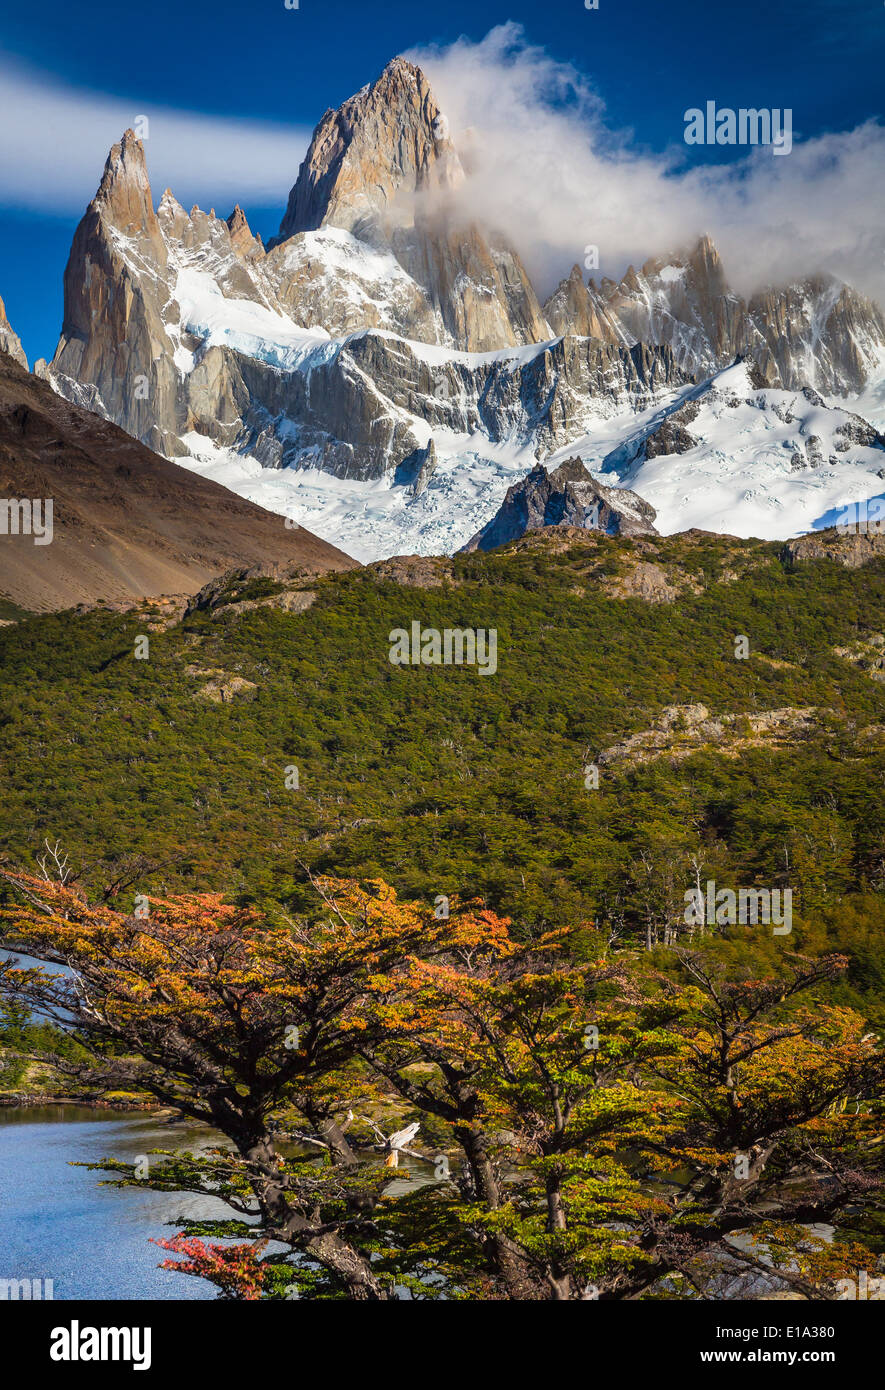 Fitz Roy towering high above Laguna Capri in Patagonia, Argentina - Stock Image